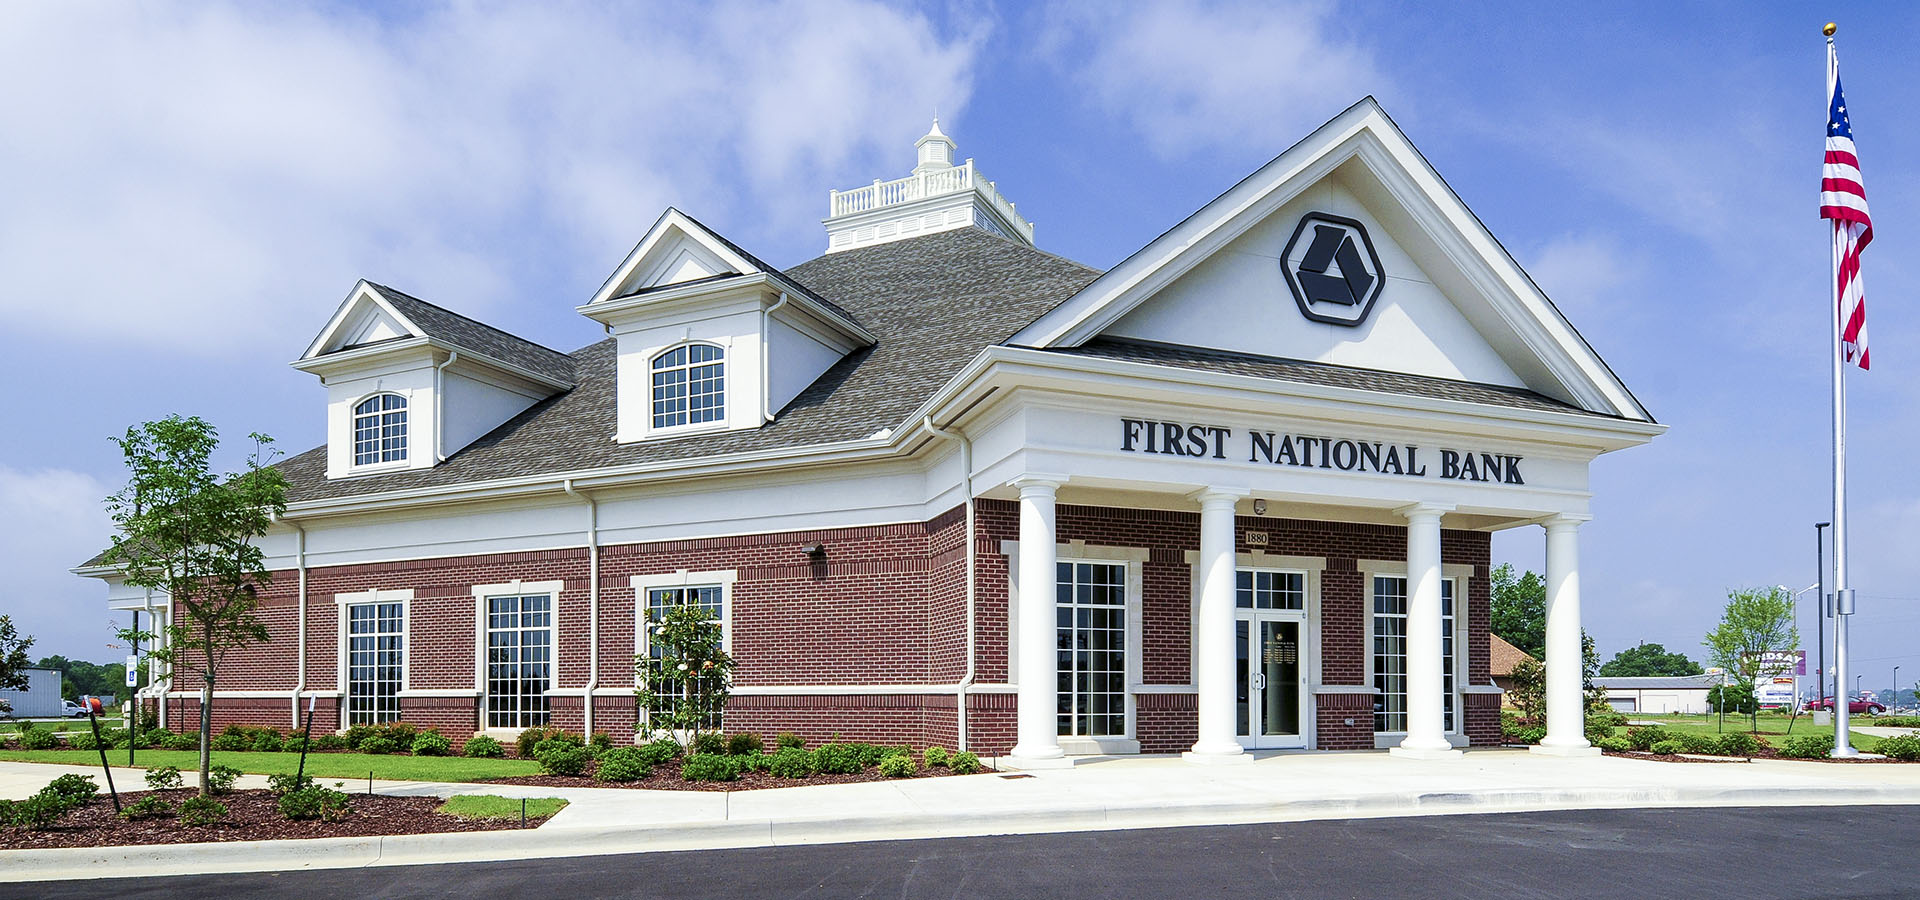 First National Bank | Athens, Alabama | Brindley Construction